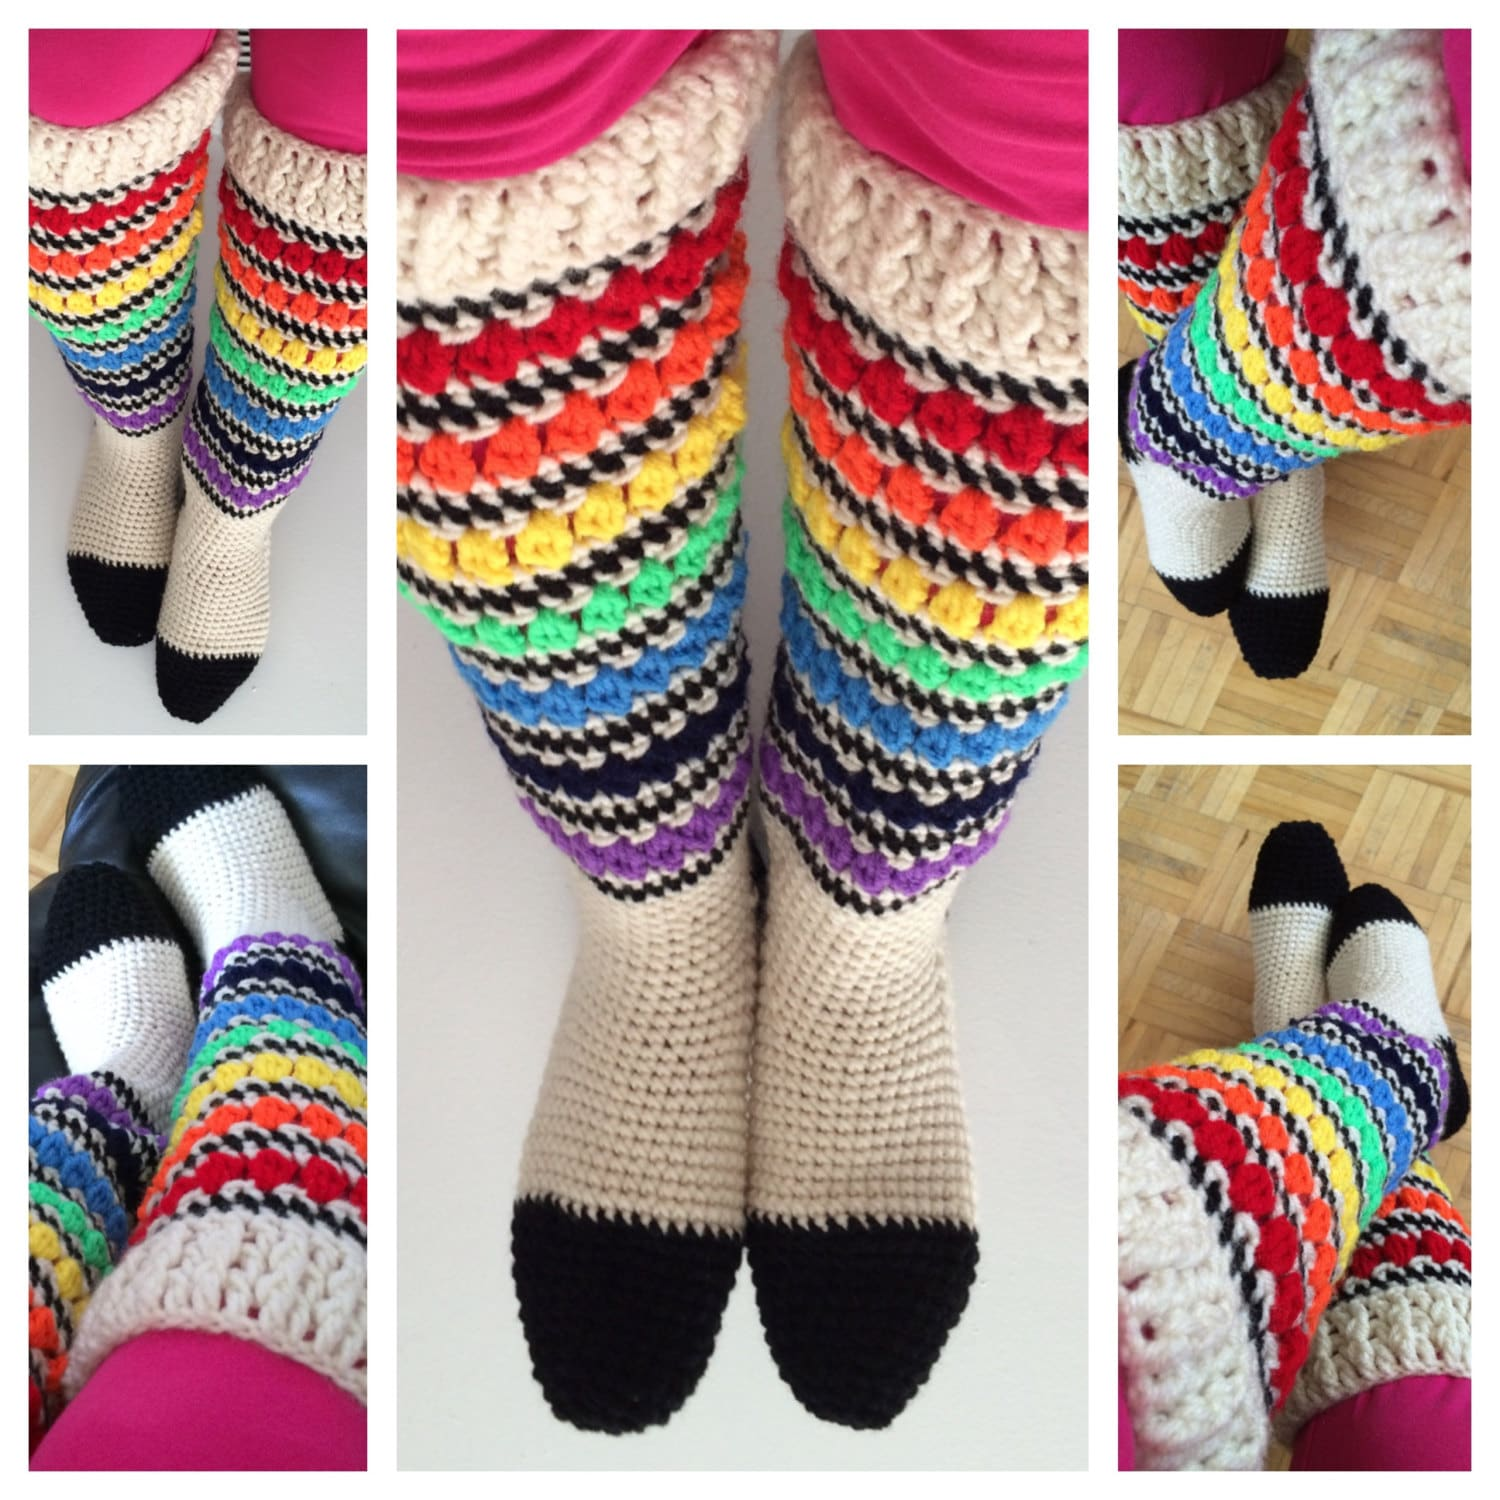 Crochet Sock Pattern Pdf Knee High Sock Crochet Pride Etsy